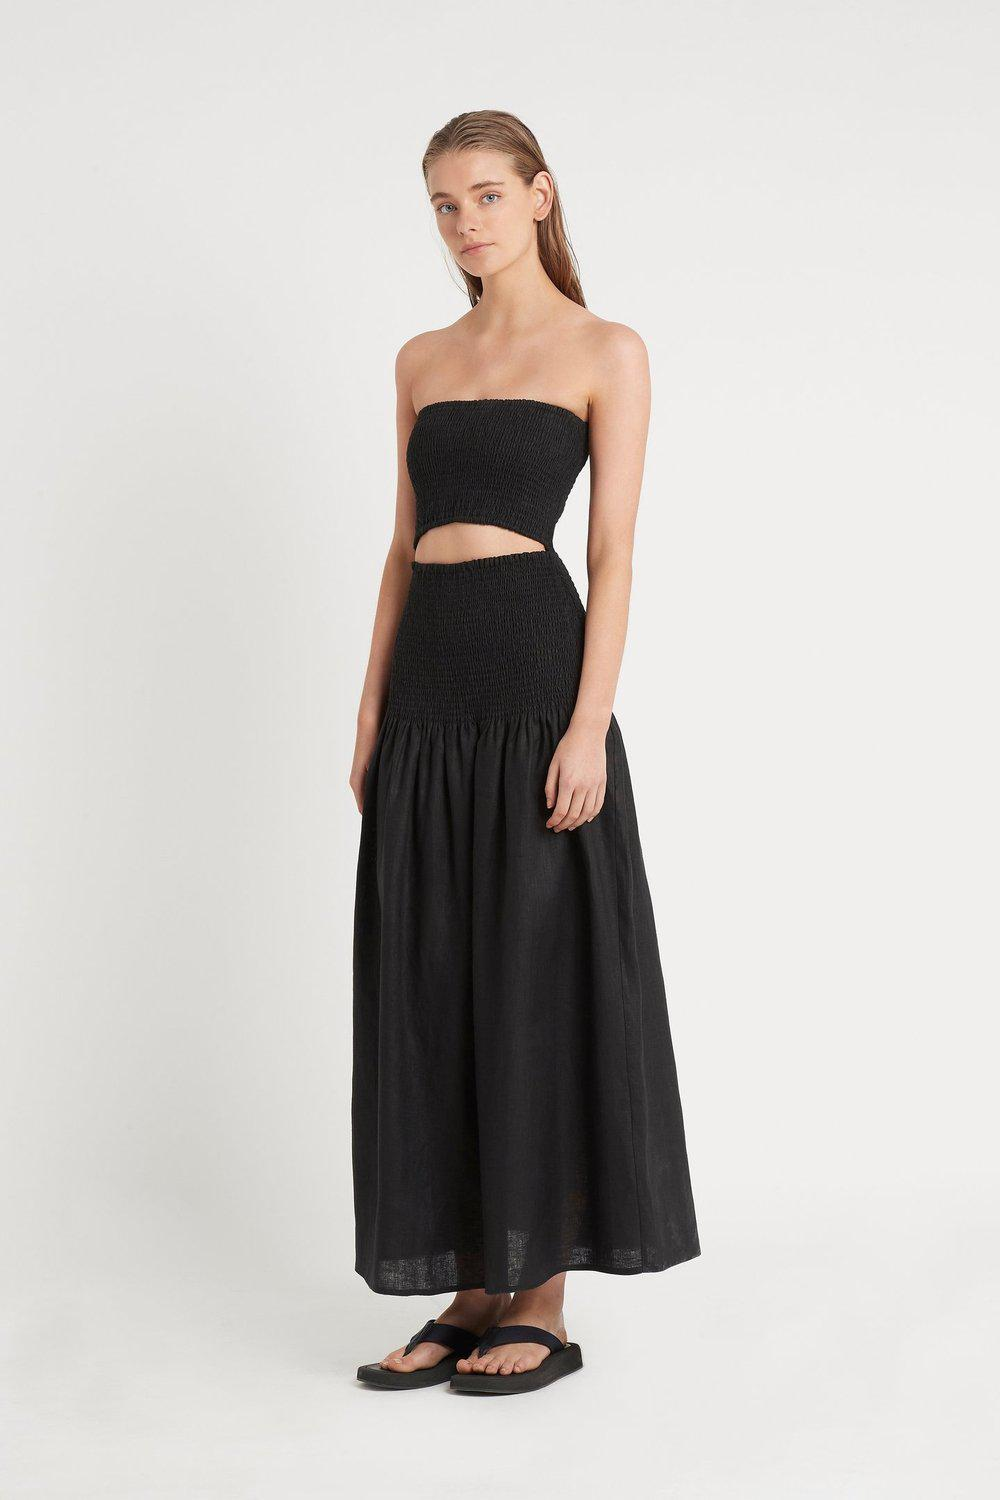 Madelyn Strapless Dress / Black | SIR | Mad About The Boy